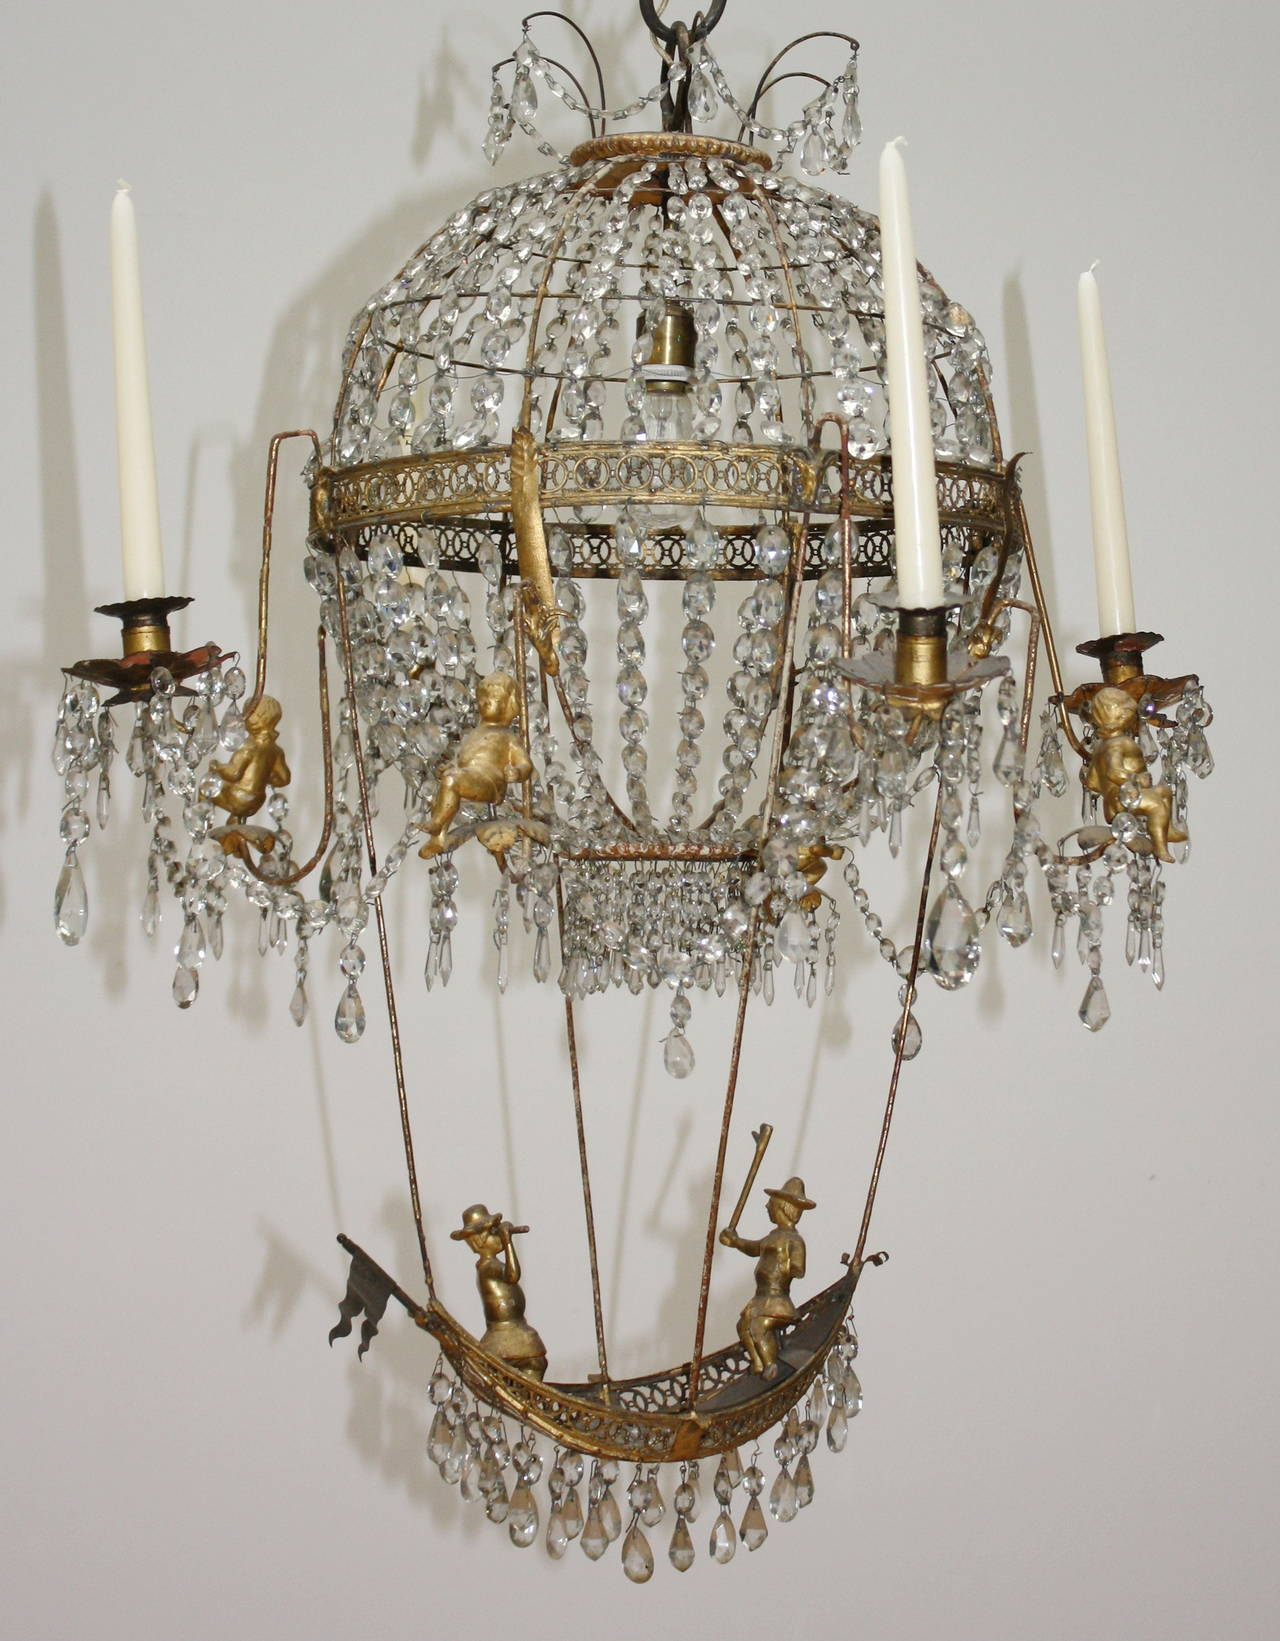 18th Century Pair of Montgolfier Chandeliers For Sale at 1stdibs